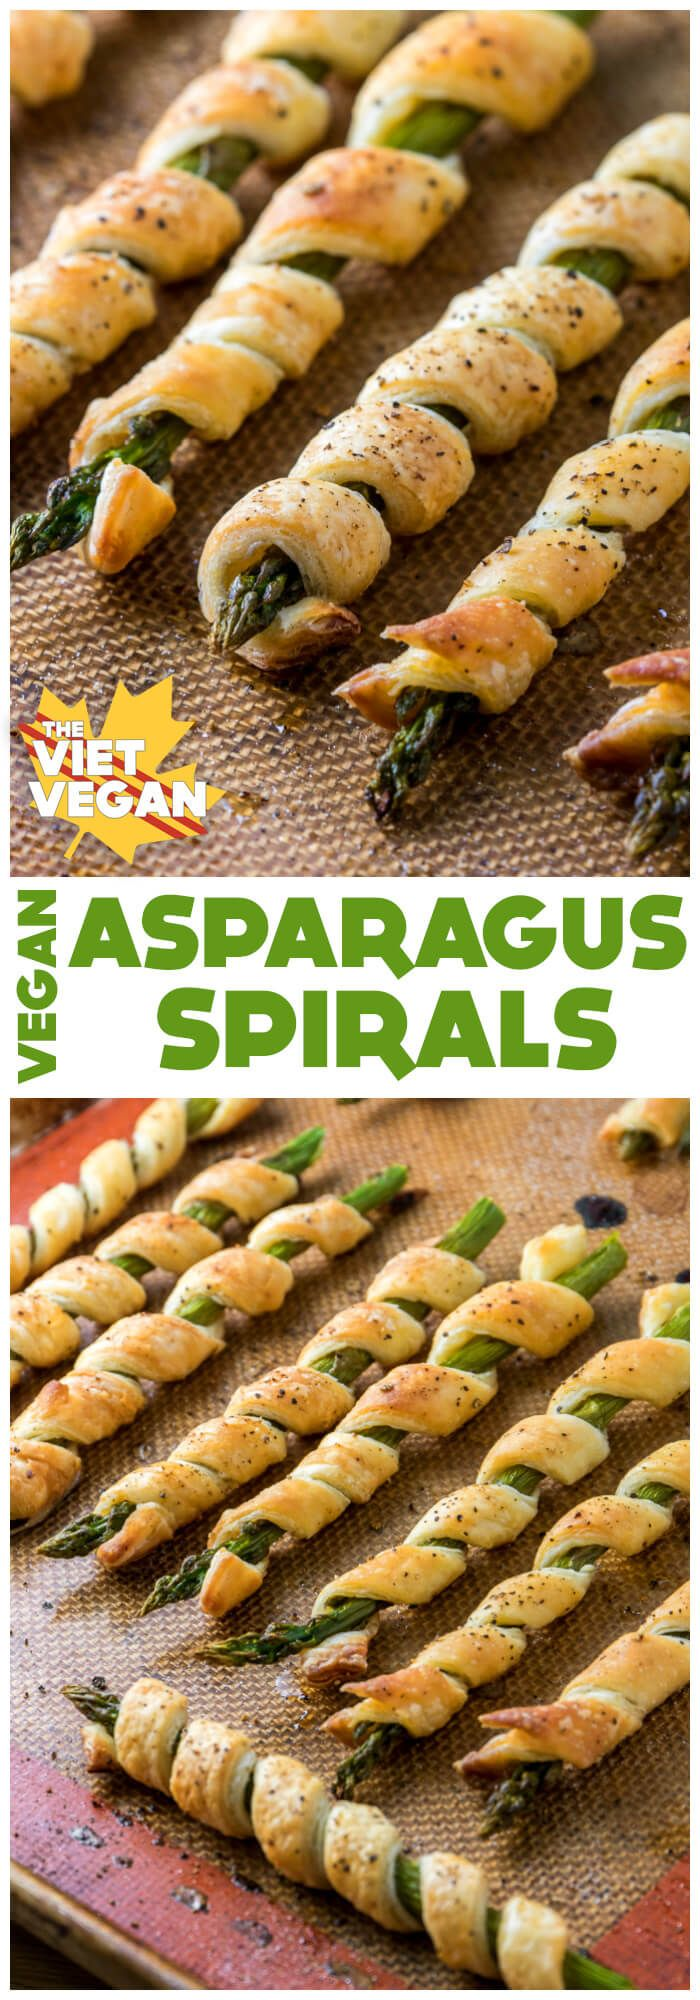 A simple soy milk wash with some cracked salt and pepper makes these quick, vegan asparagus spirals seem a lot more elegant than they actually are.